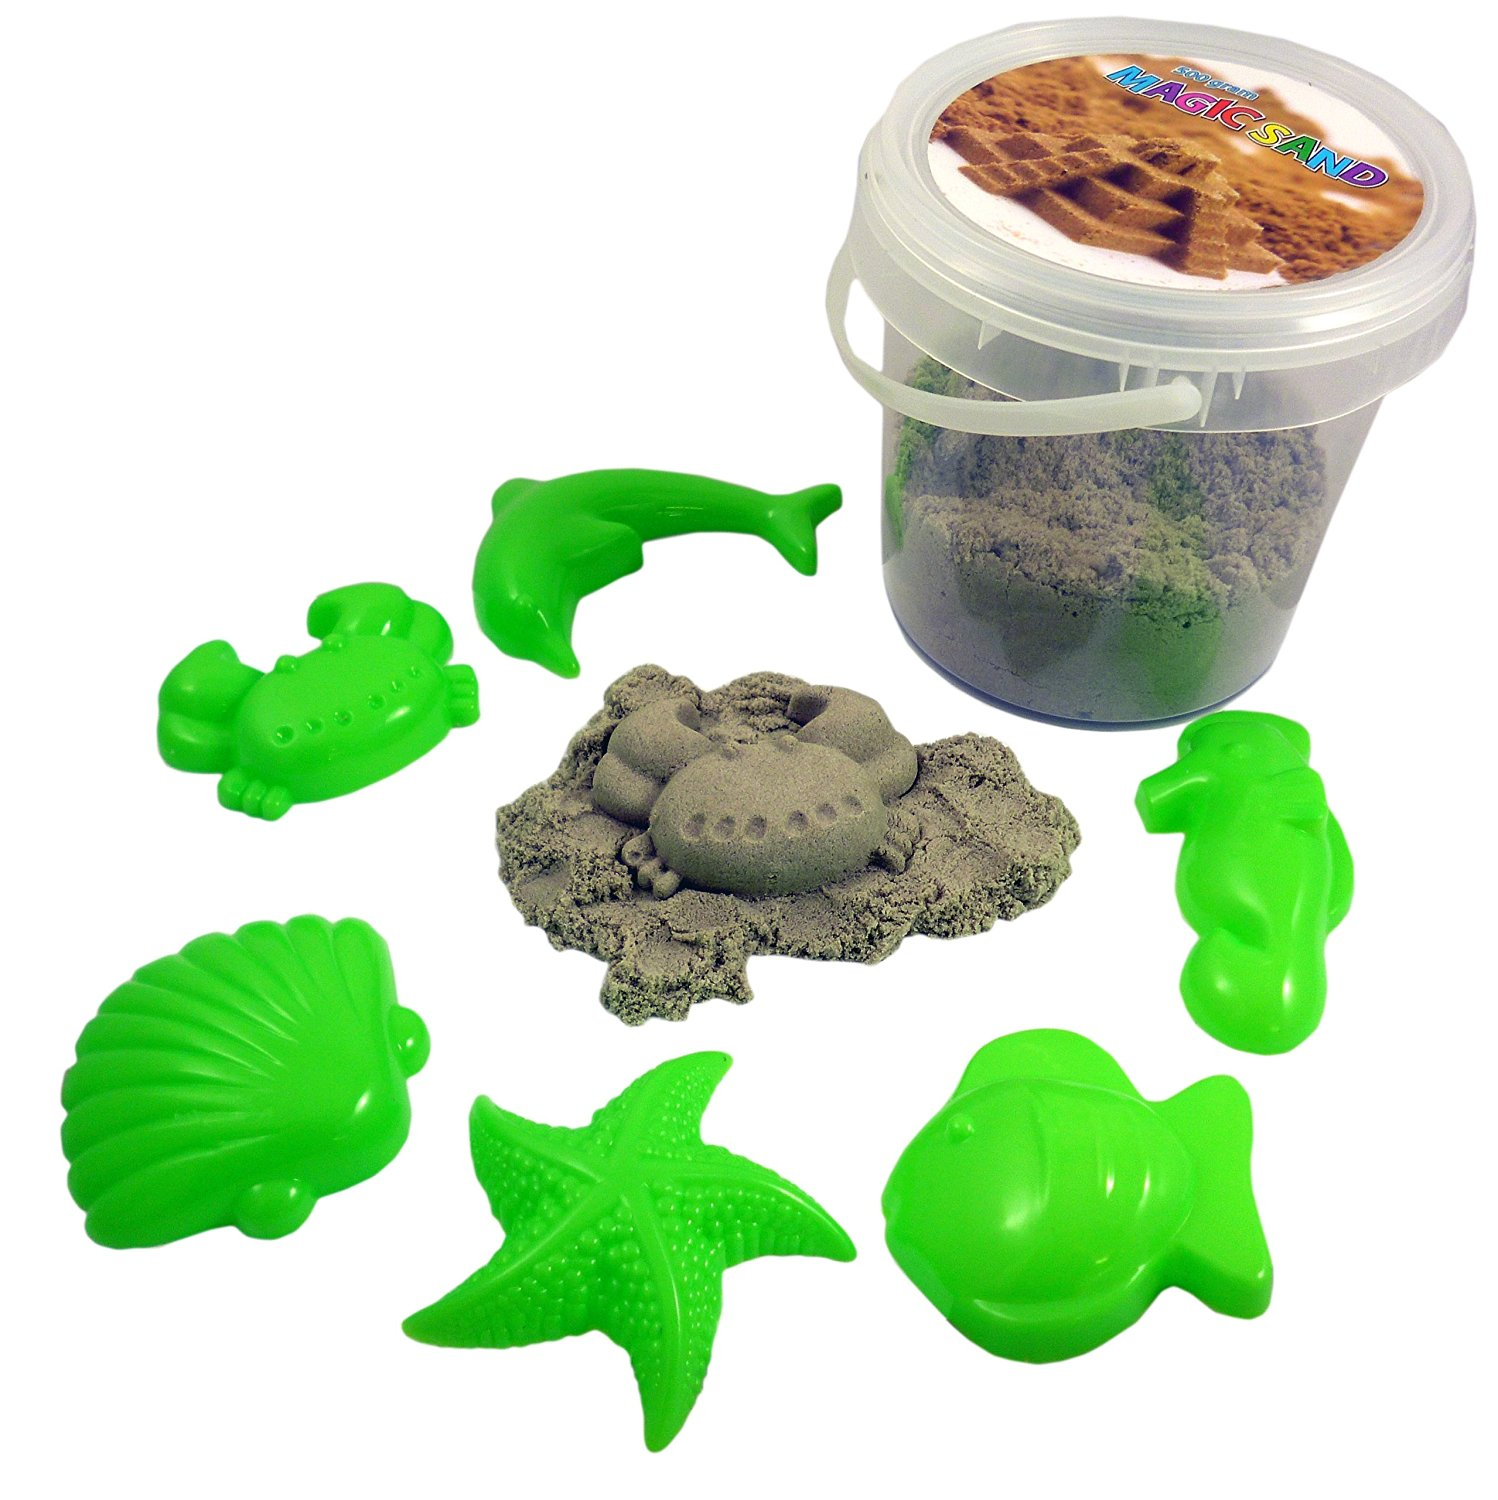 SAND Magic Sand 500g With 6 Shell Moulds- Sculpture, Mould and Play [Toy]